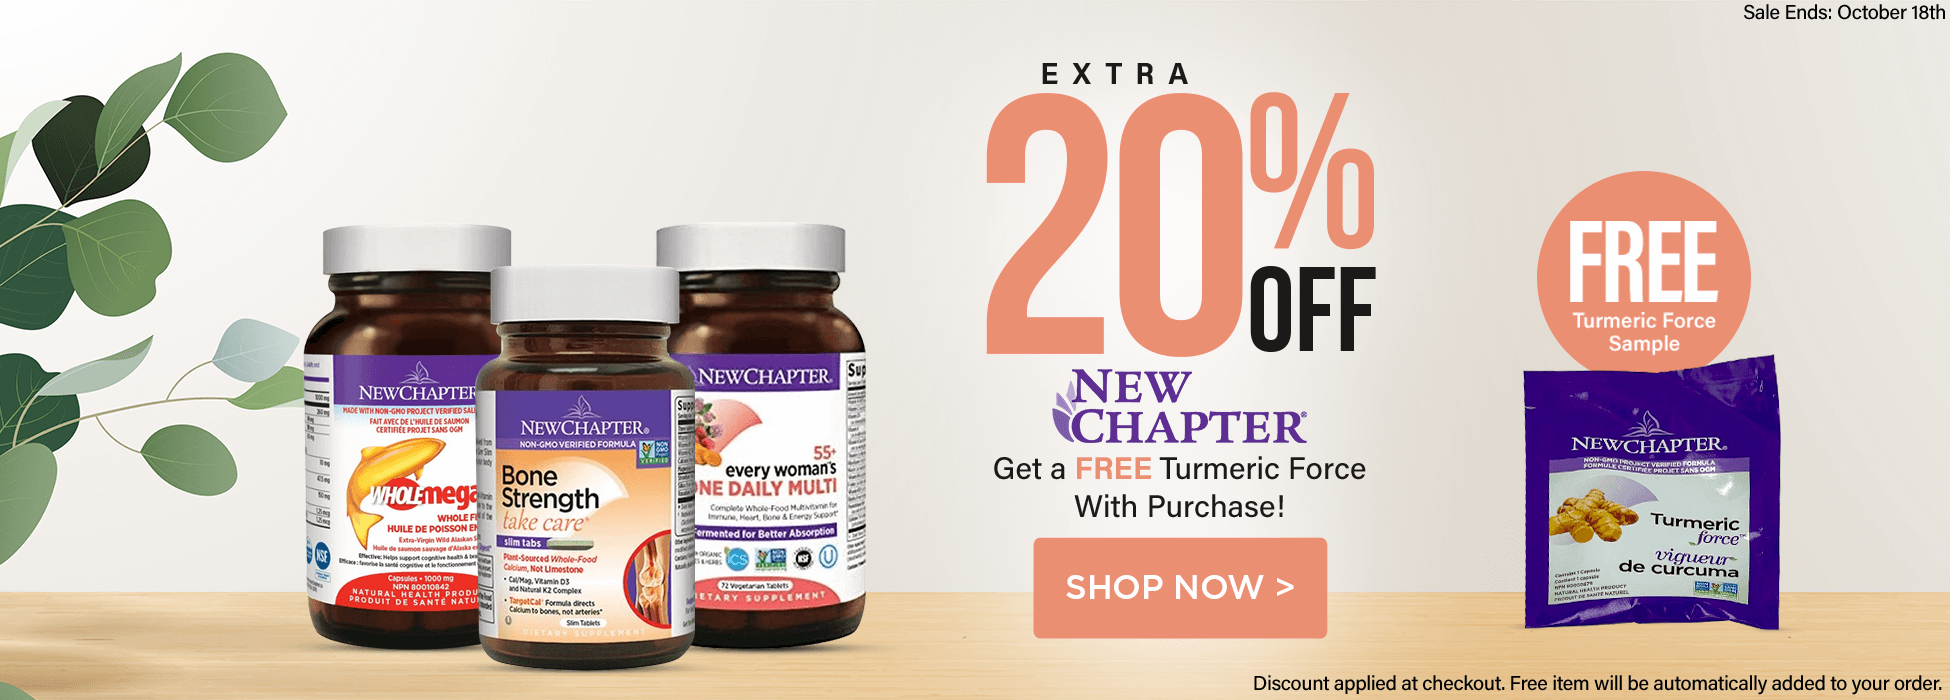 New Chapter sale multivitimin canada omega supplement